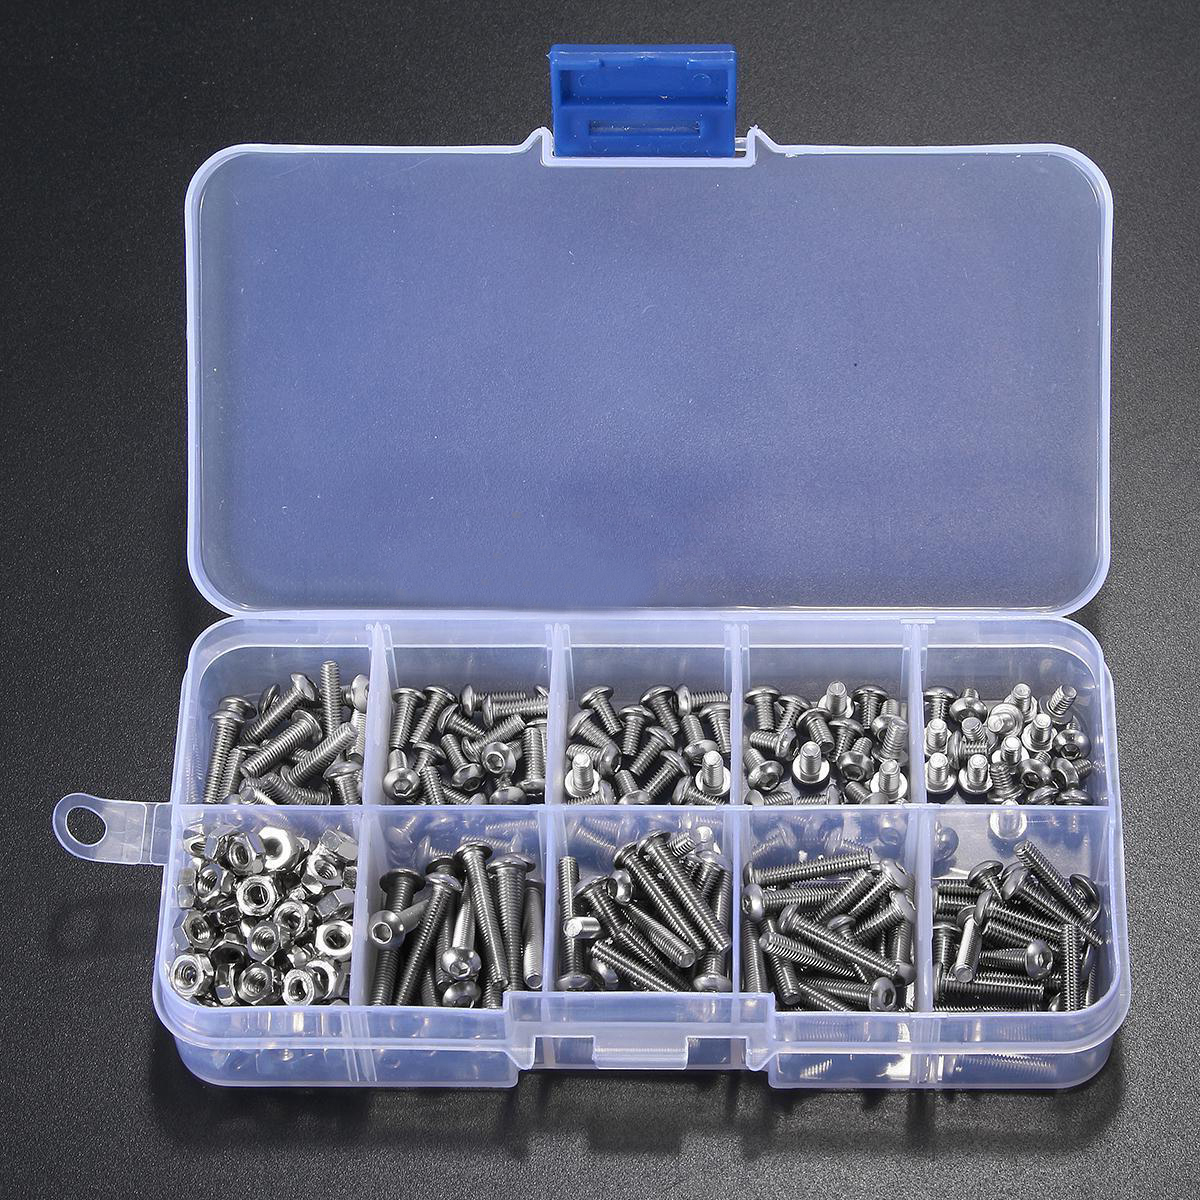 340pcs Stainless Steel M3 A2 Hex Screw Kit Assortment Nuts Bolt Cap Socket Set 125x65x22mm with Case berserk 5 ps lot 304 stainless steel m12 120 cap nuts bracelet hex set screw